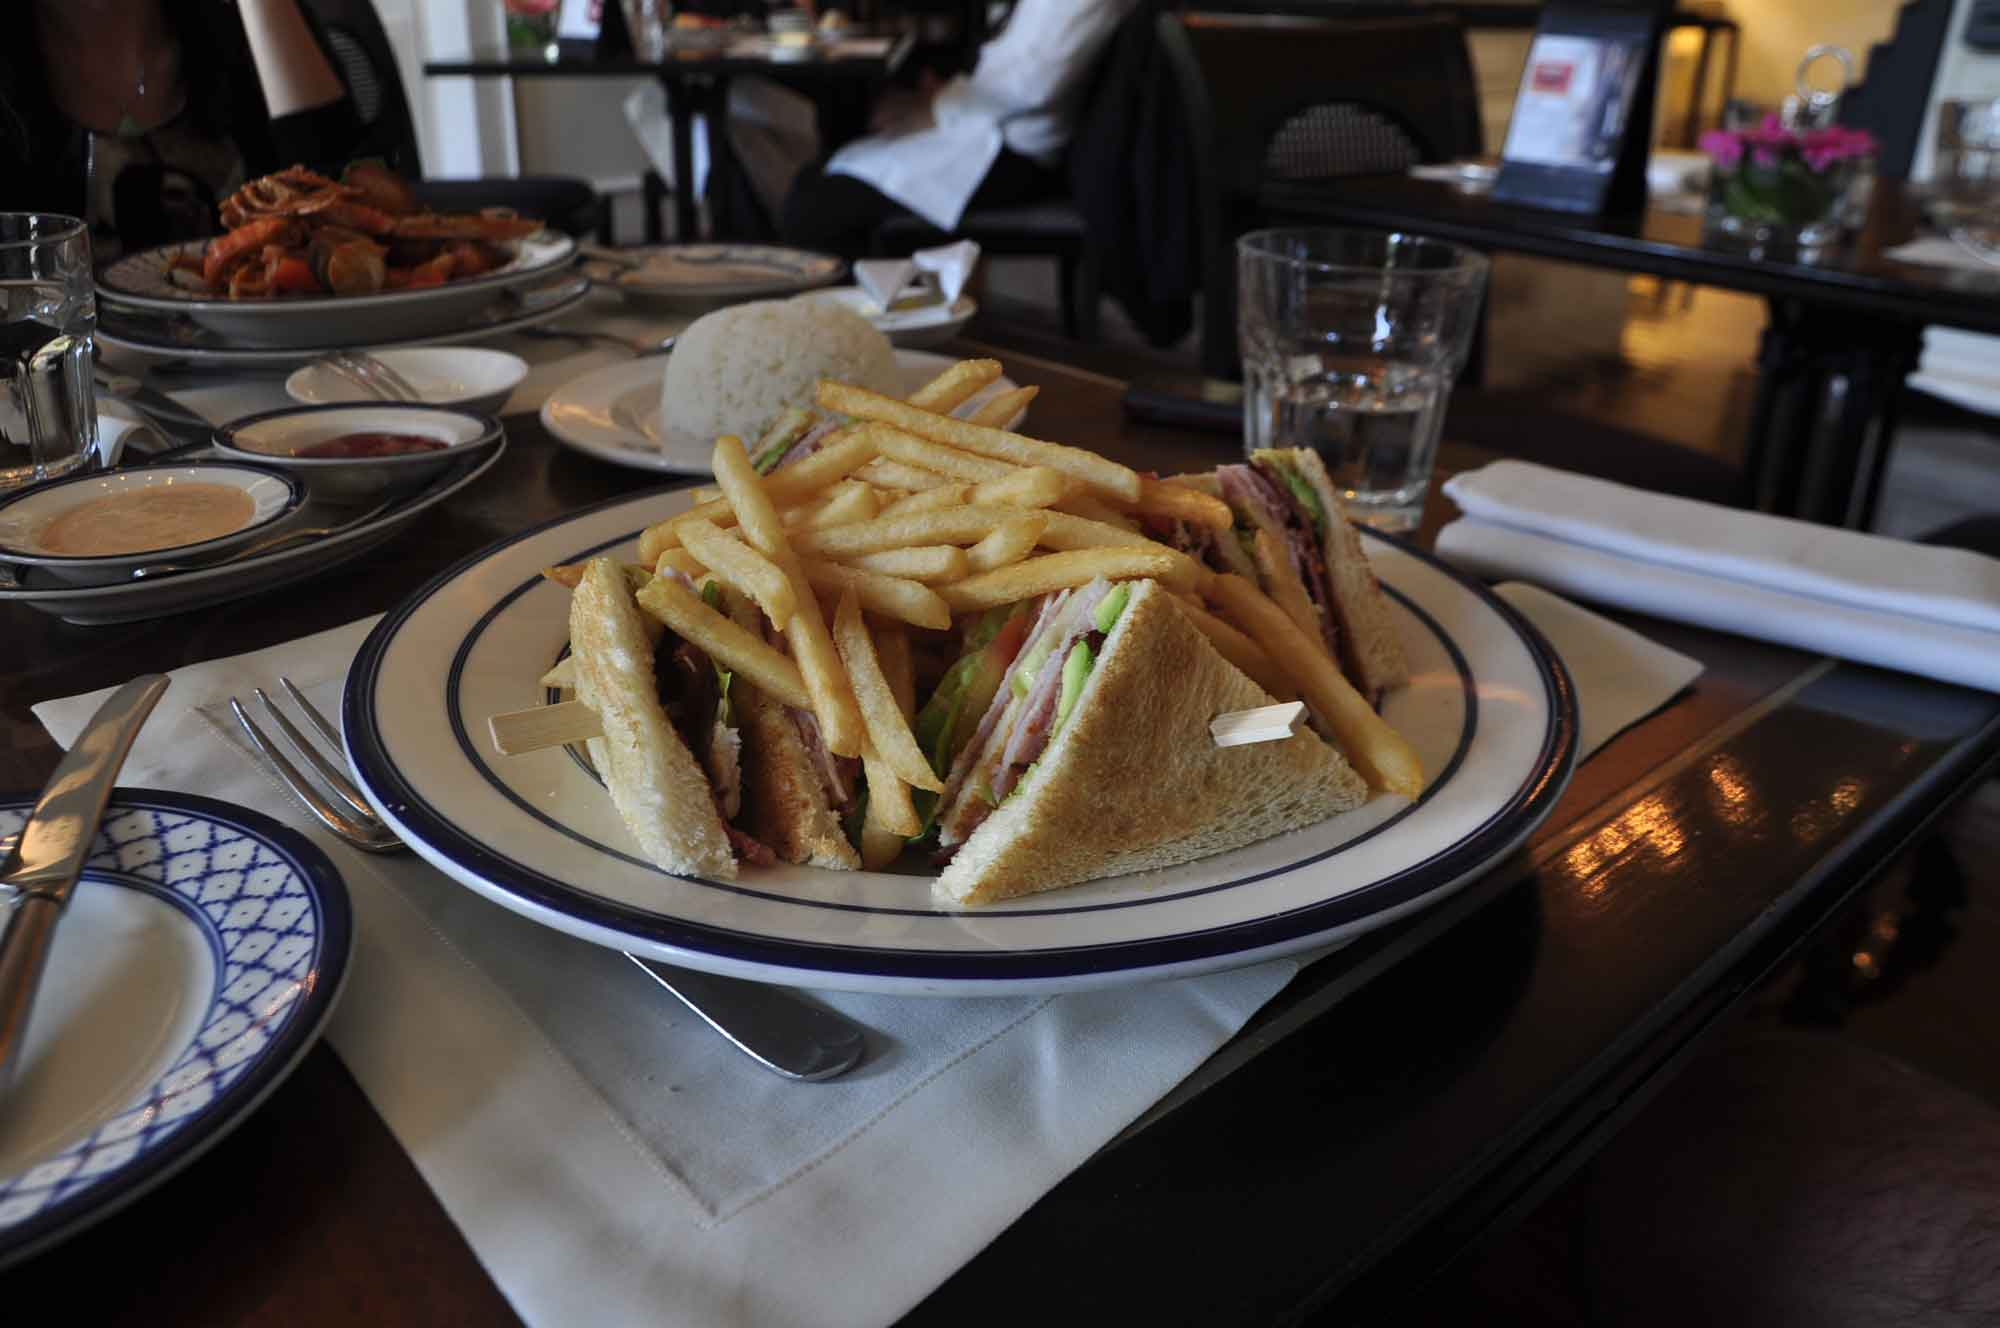 Cafe Bela Vista Macau club sandwich